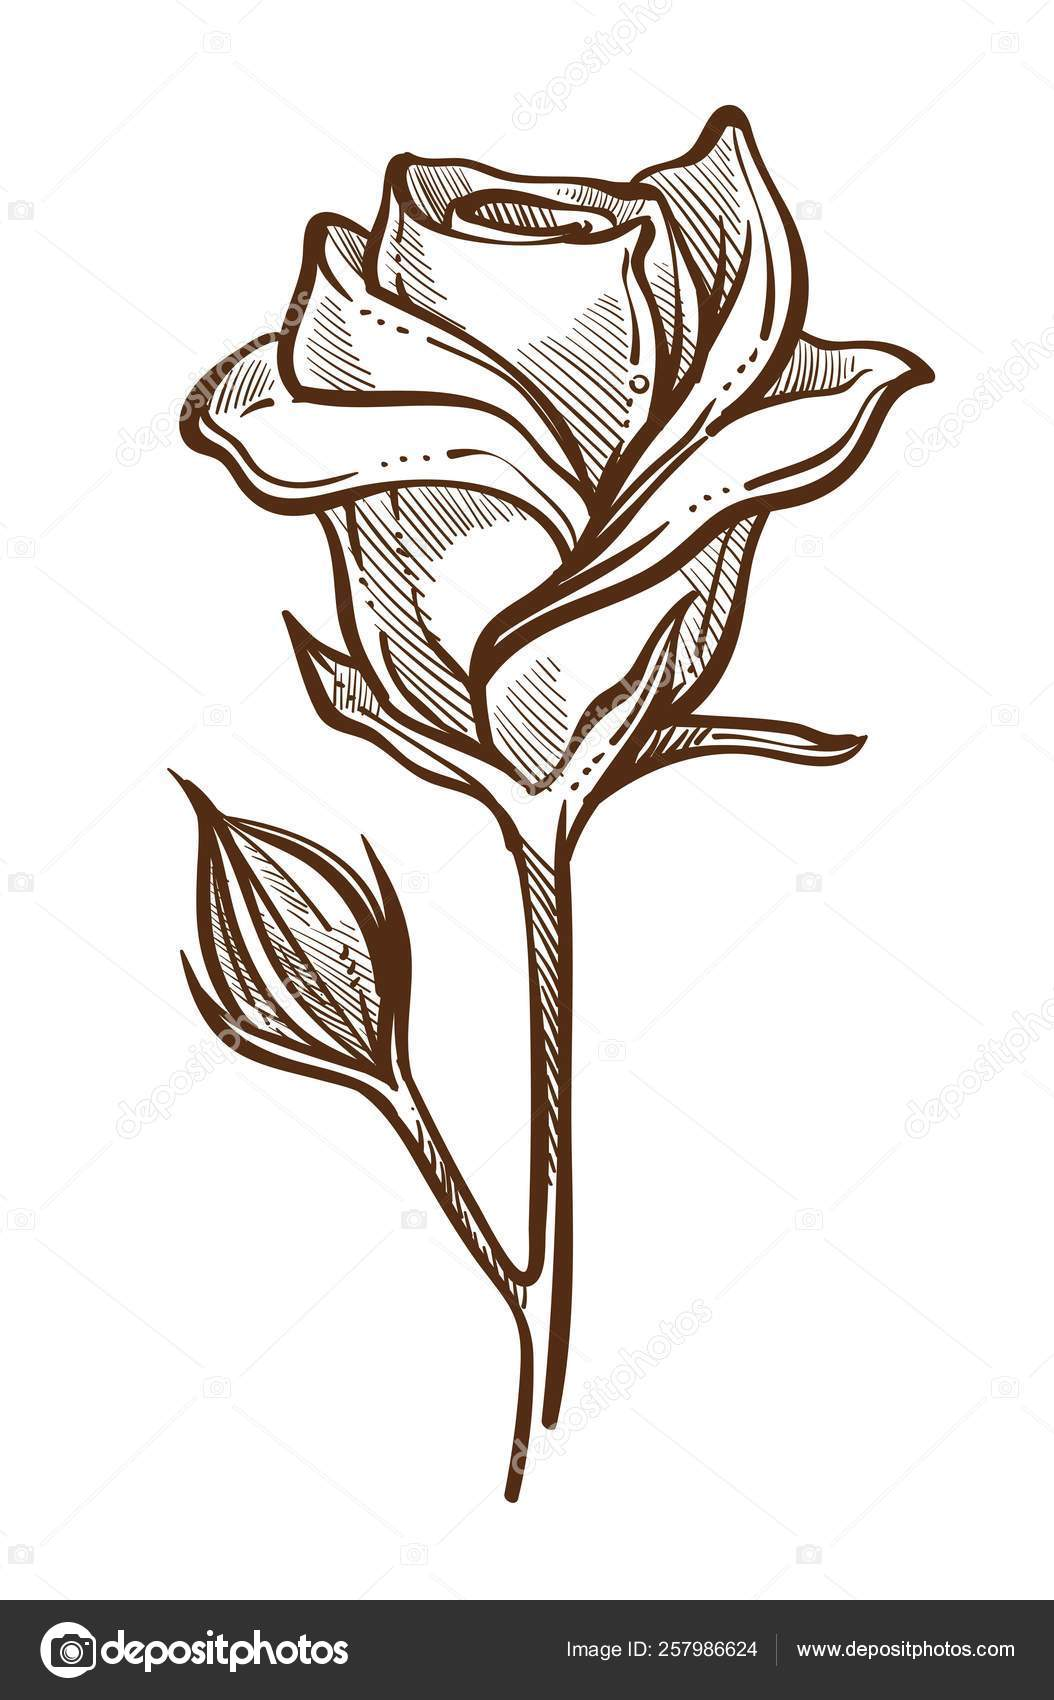 Closed Rose Sketch Rose Plant Open Closed Buds Stem Isolated Sketch Vector Flower Stock Vector C Sonulkaster 257986624